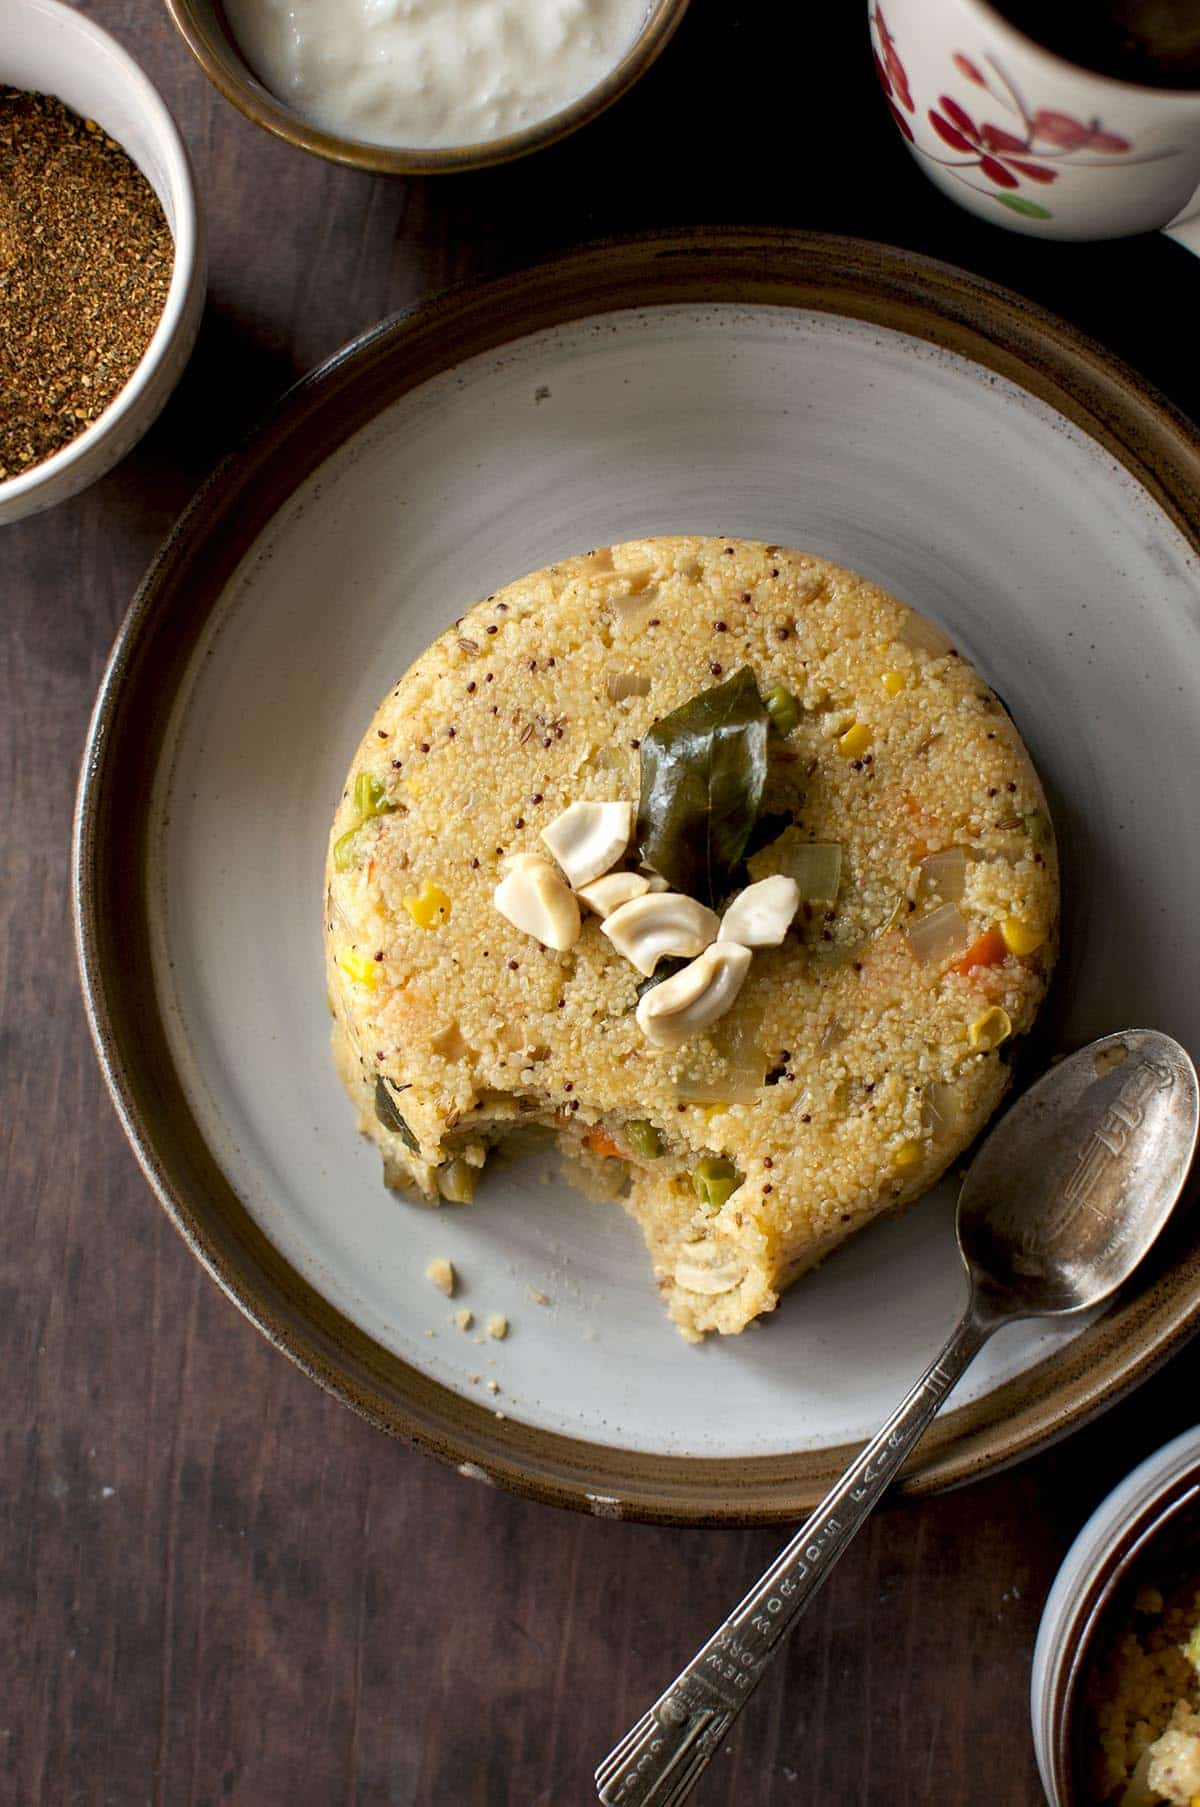 Grey plate with savory millet porridge and a spoon